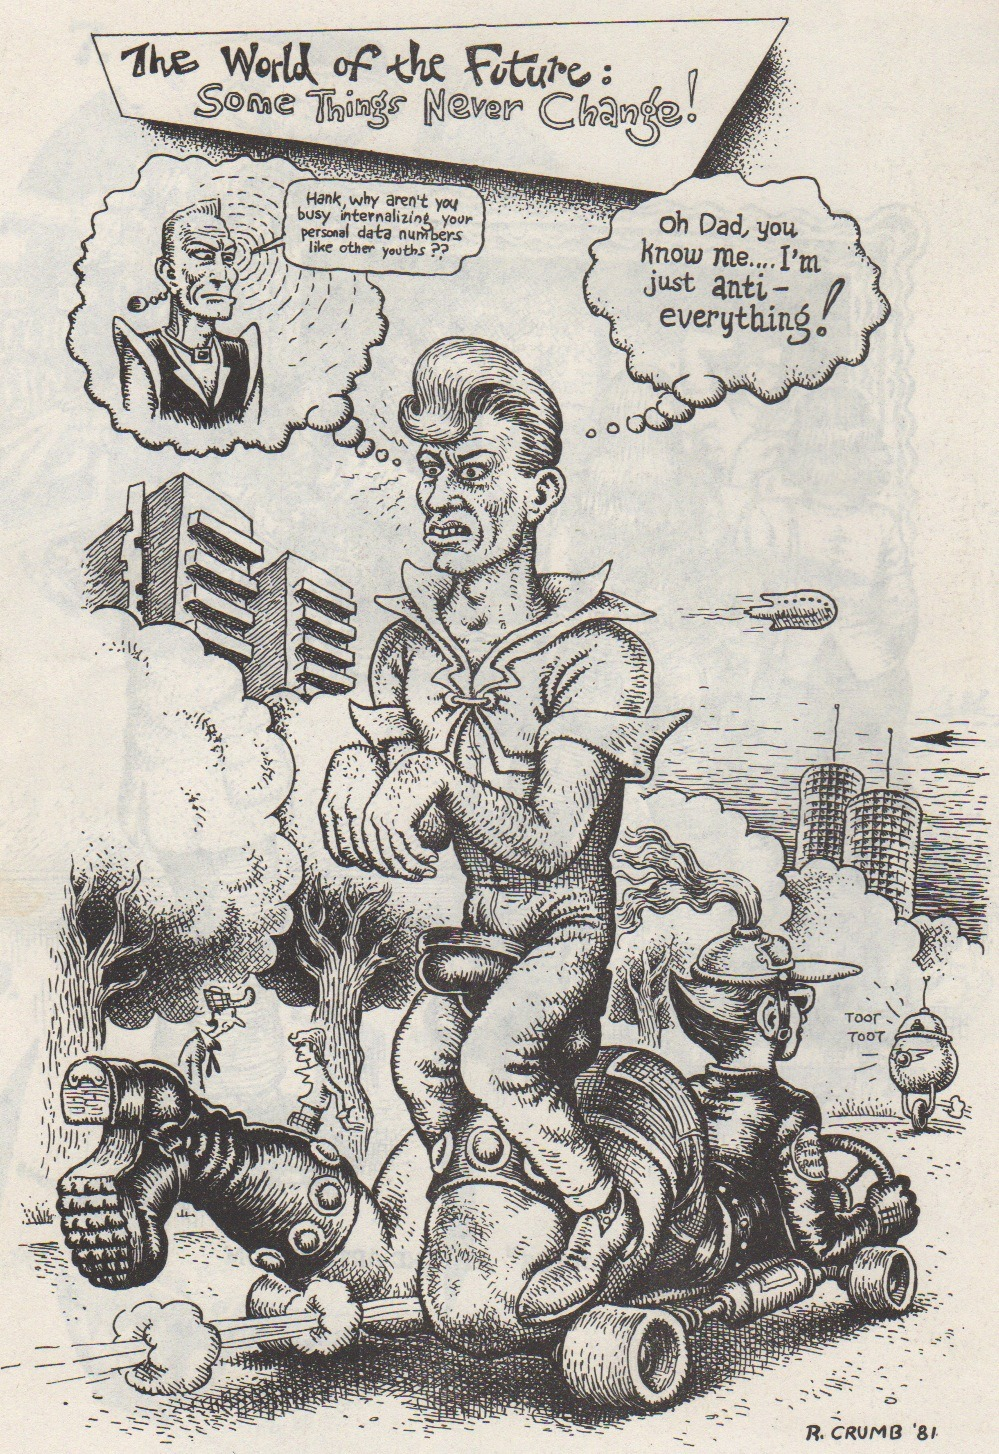 """The World of the Future: Some Things Never Change!"", by R. Crumb 1981. Scanned from Weirdo Number 2, Last Gasp Eco-Funnies, 2nd printing July 1981"